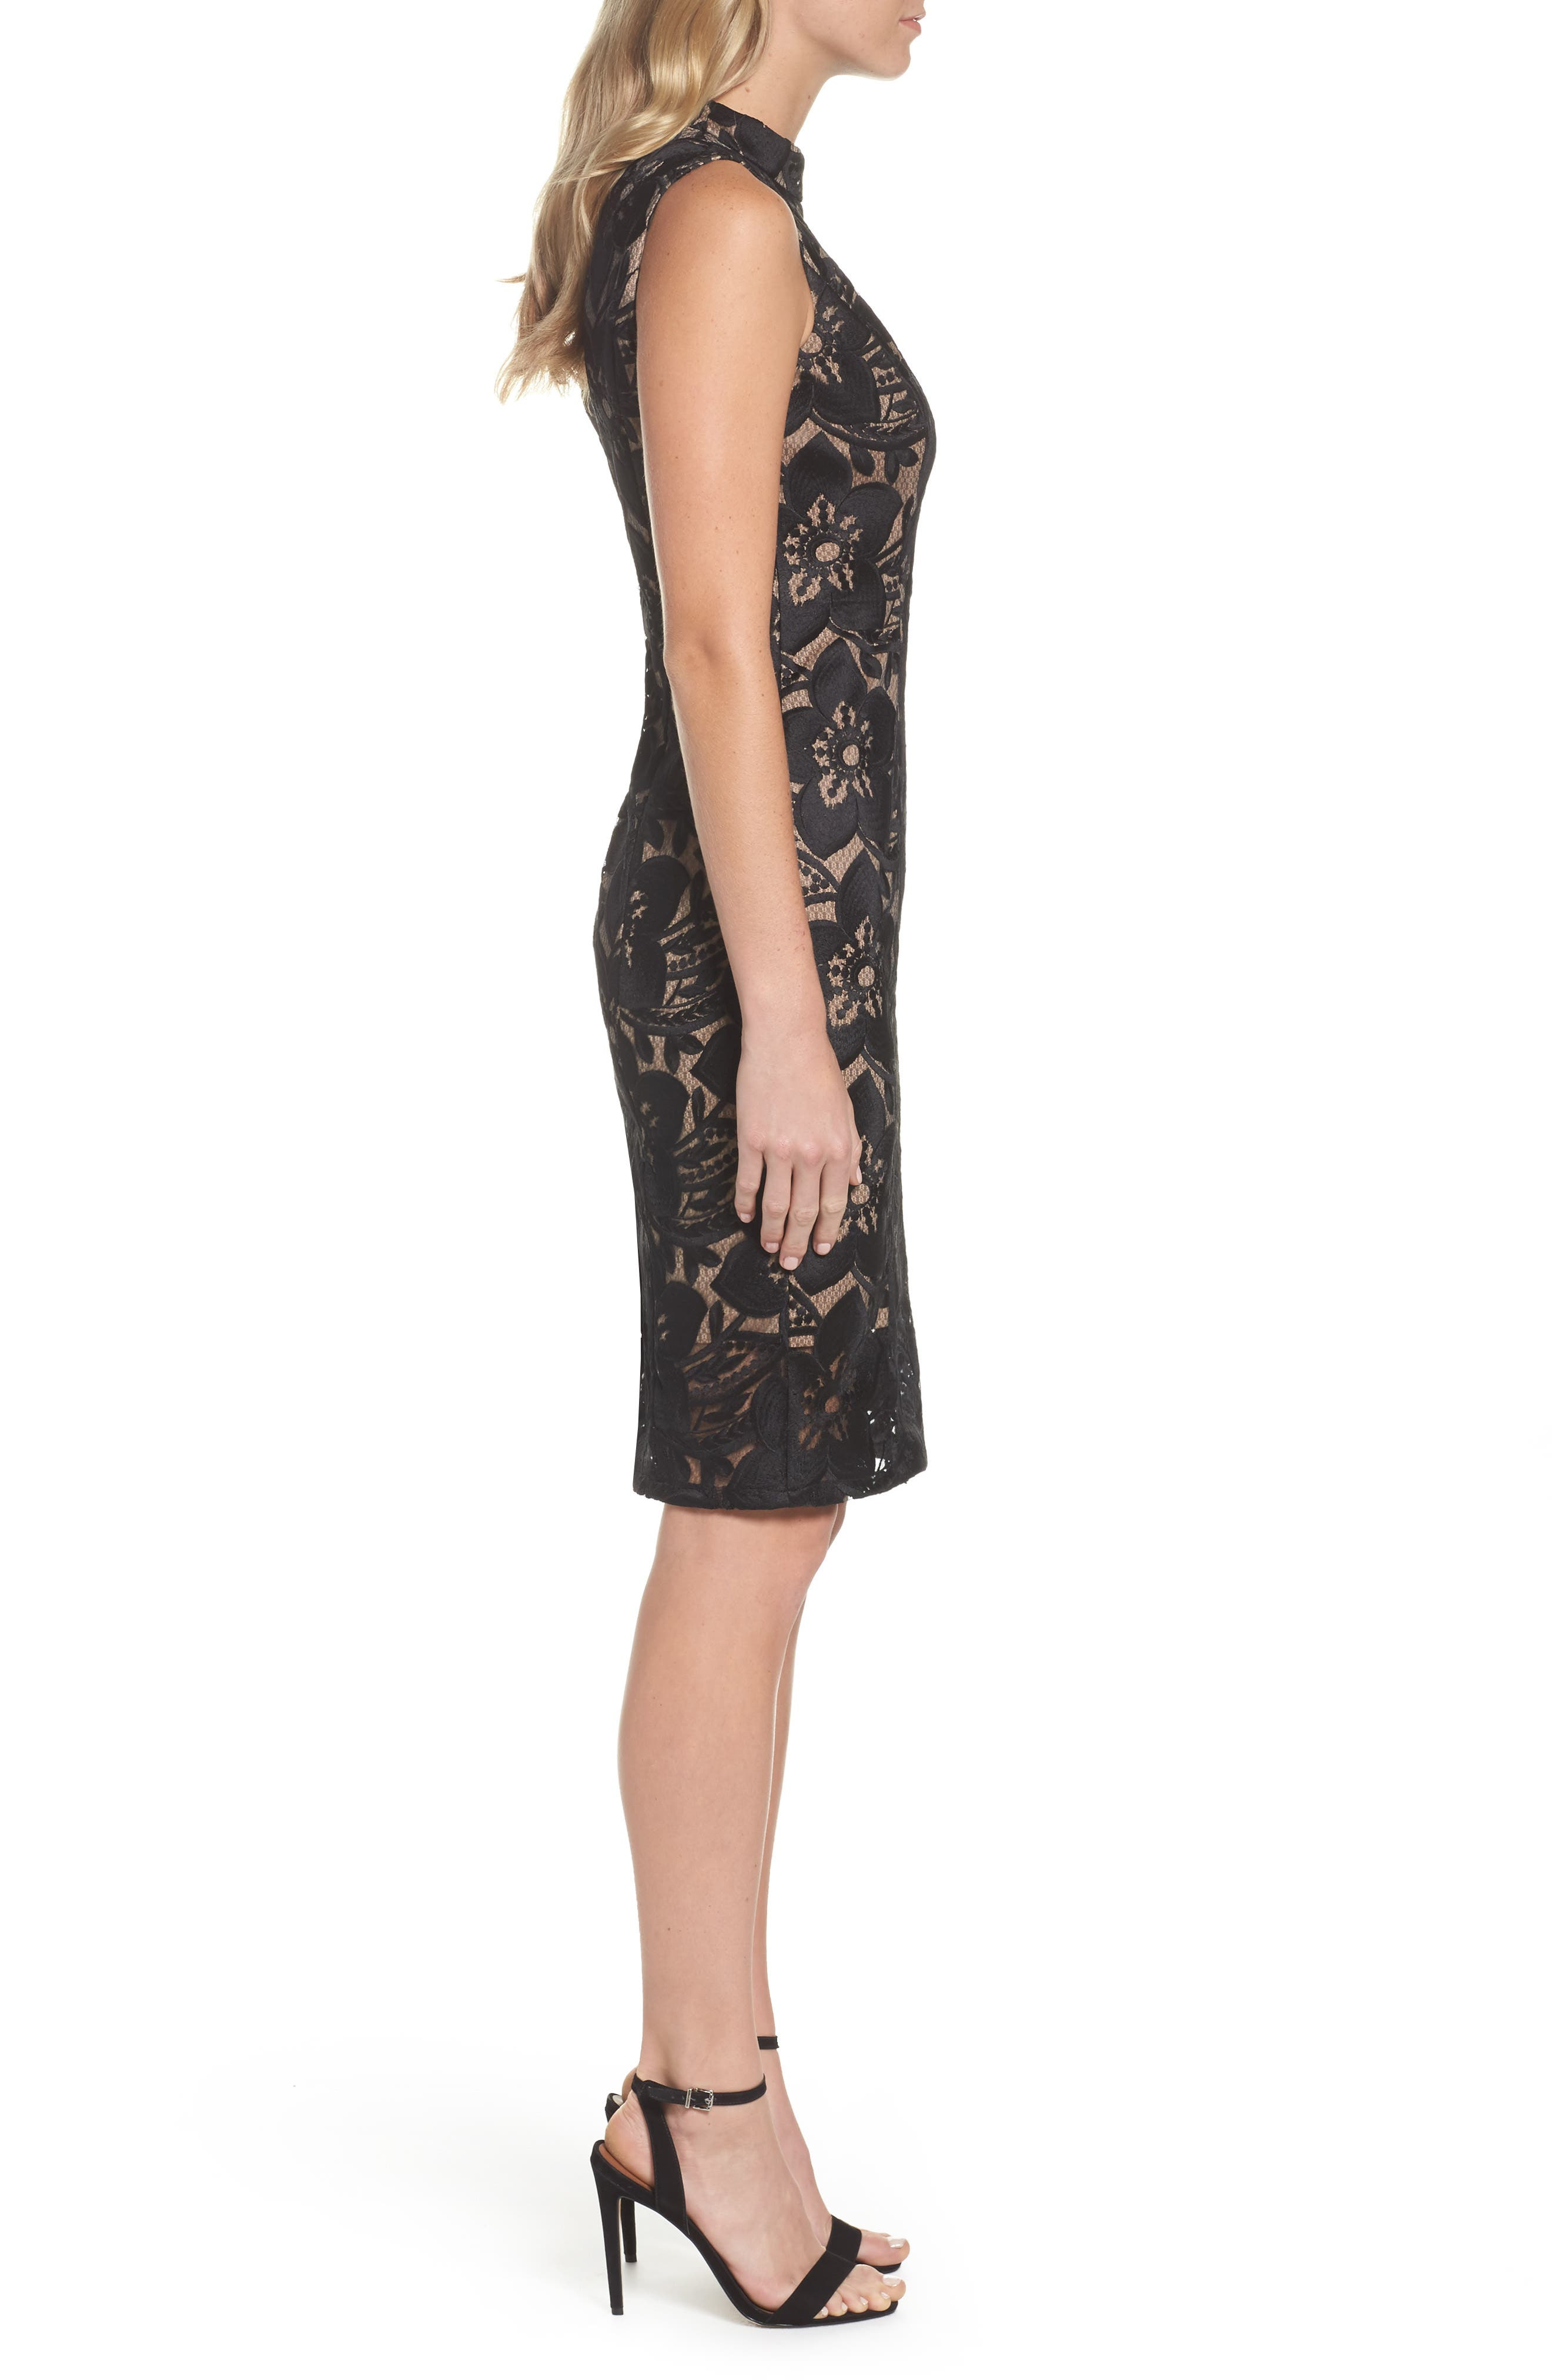 ADRIANNA PAPELL,                             Lace Sheath Dress,                             Alternate thumbnail 3, color,                             002